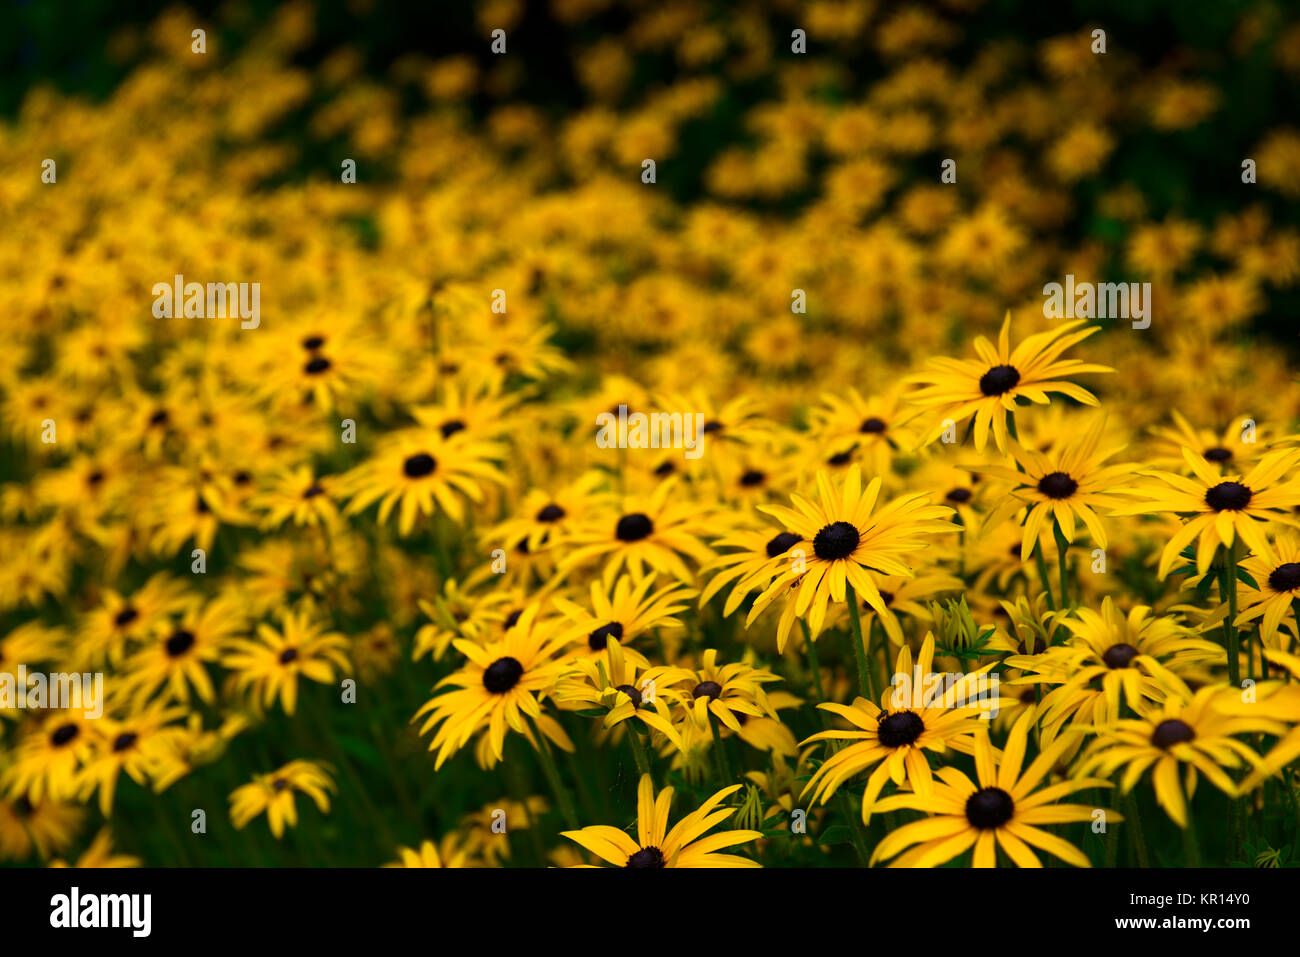 Rudbeckia hirtablack eyed stock photo 169056244 alamy rudbeckia hirtablack eyed susangoldyellowflowerflowersflowering perennial late summerearly autumnrm floral mightylinksfo